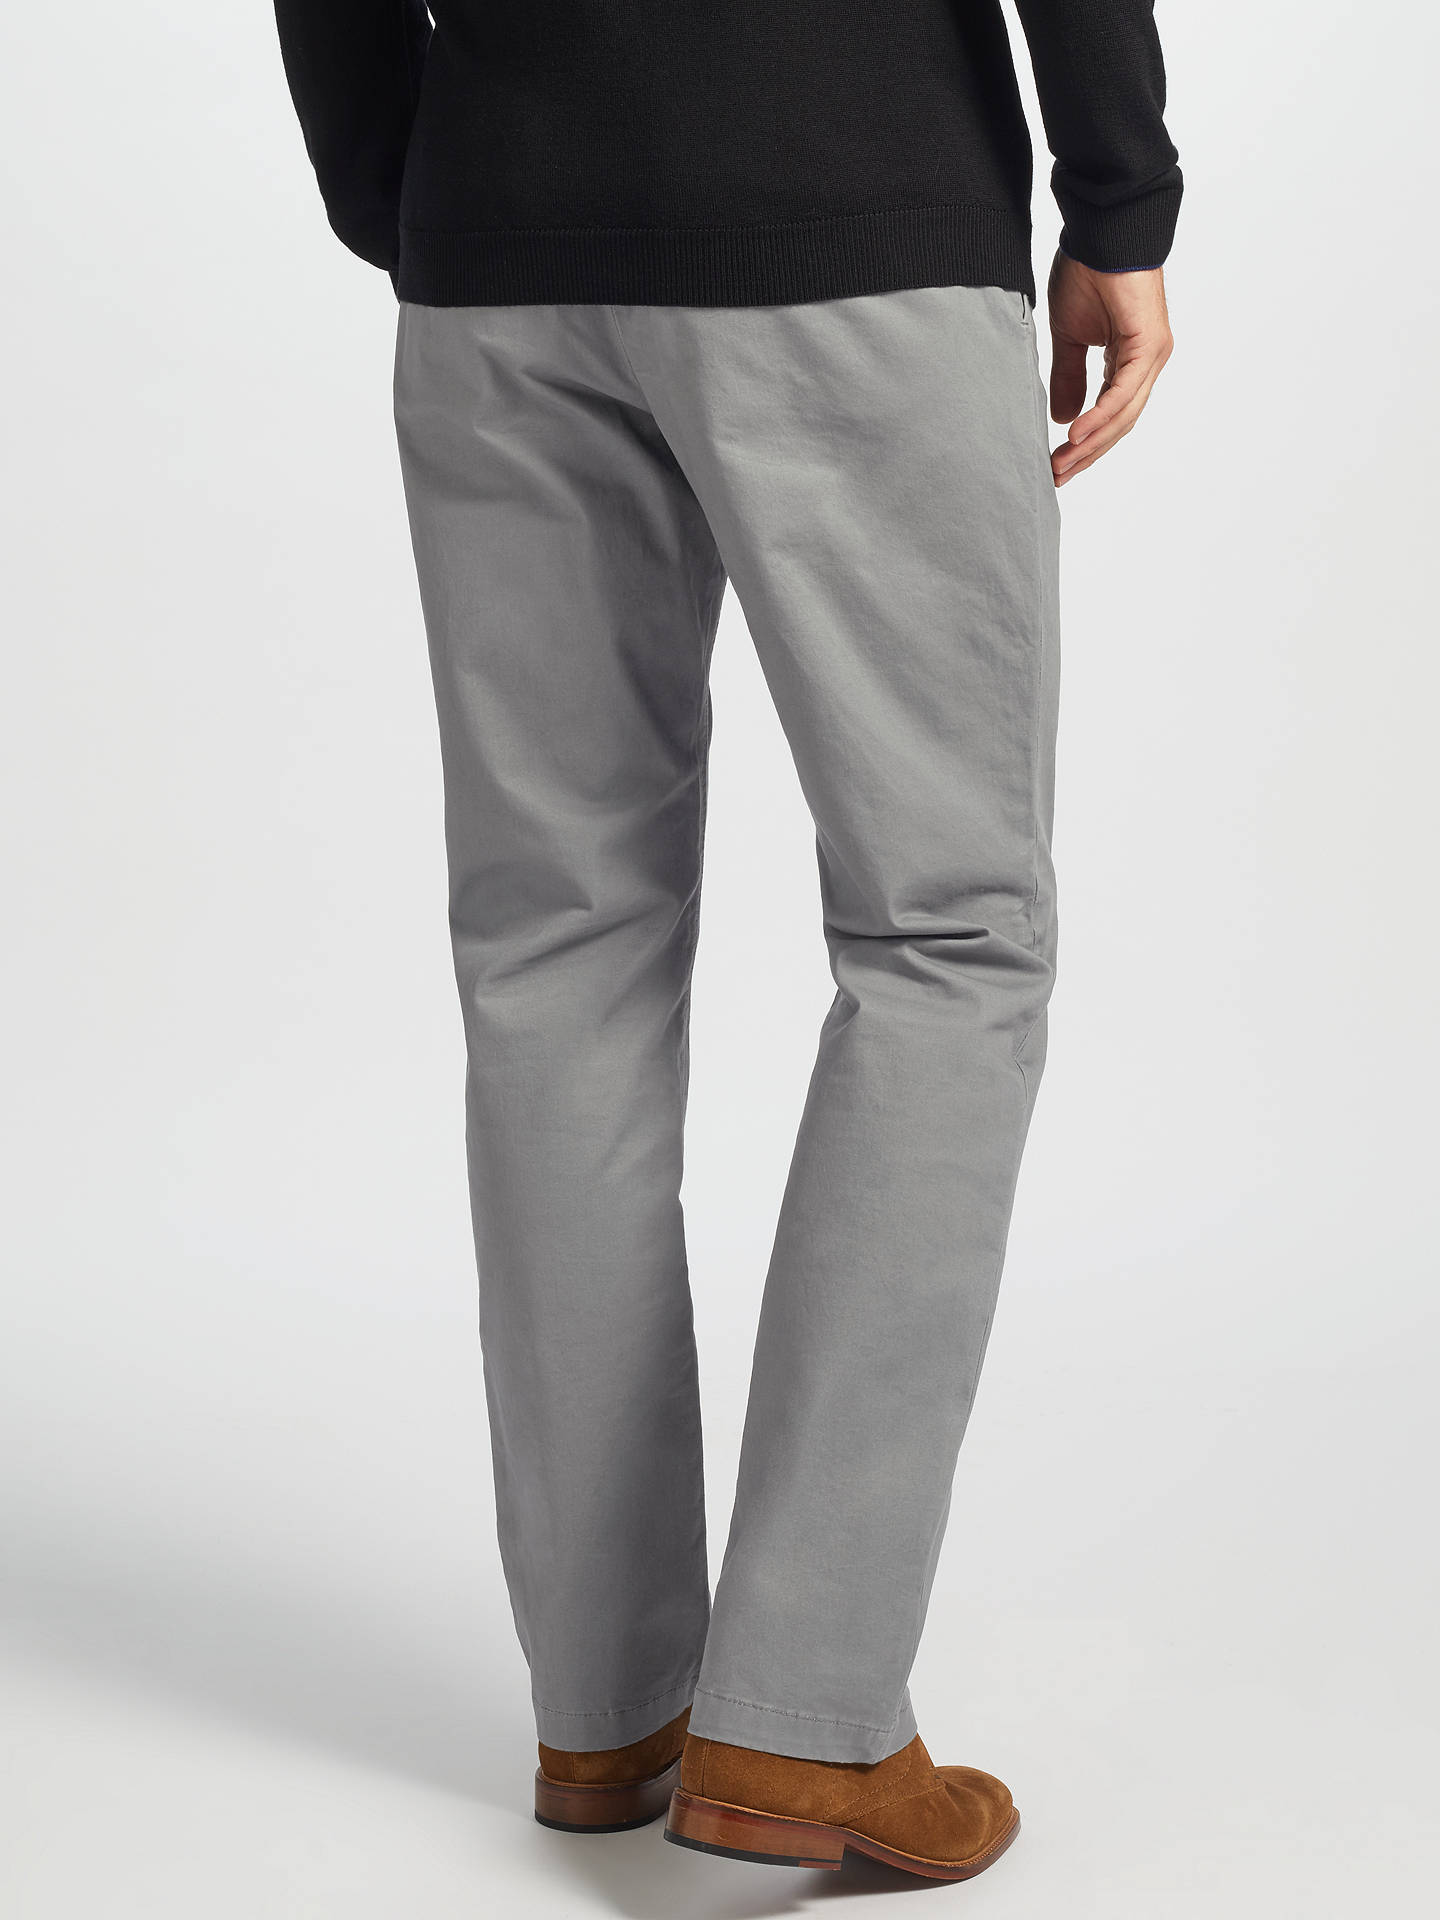 Buy John Lewis & Partners Essential Chinos, Sage, 32S Online at johnlewis.com